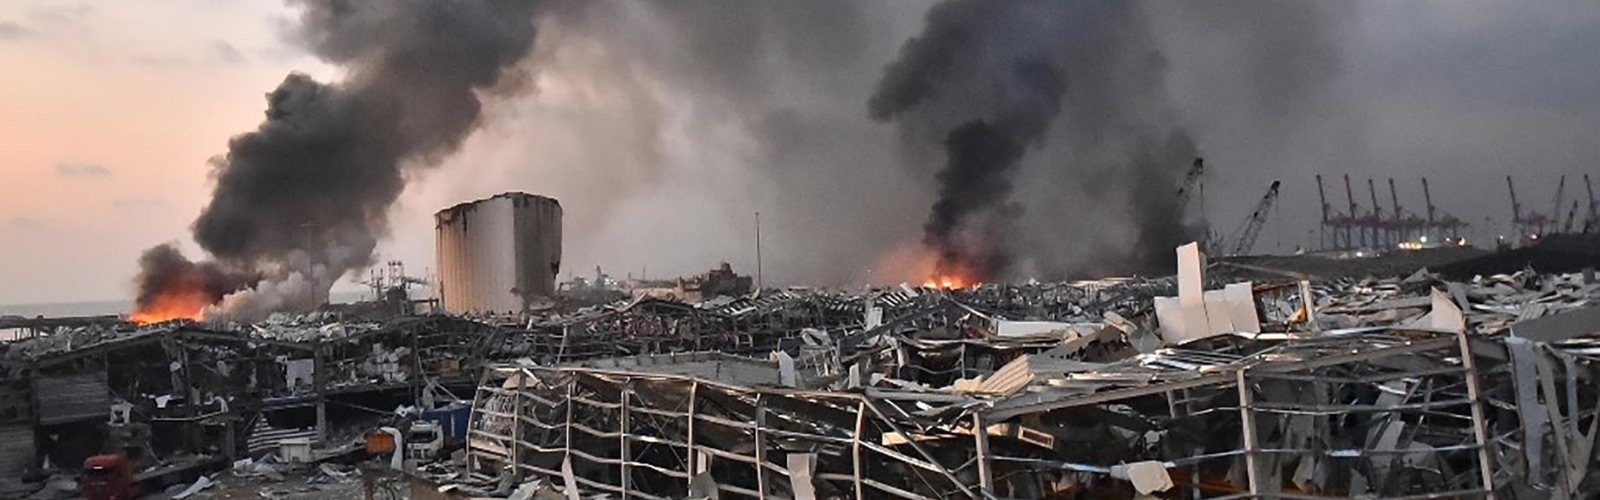 Two colossal explosions caused devastating damage in Beirut, Lebanon.